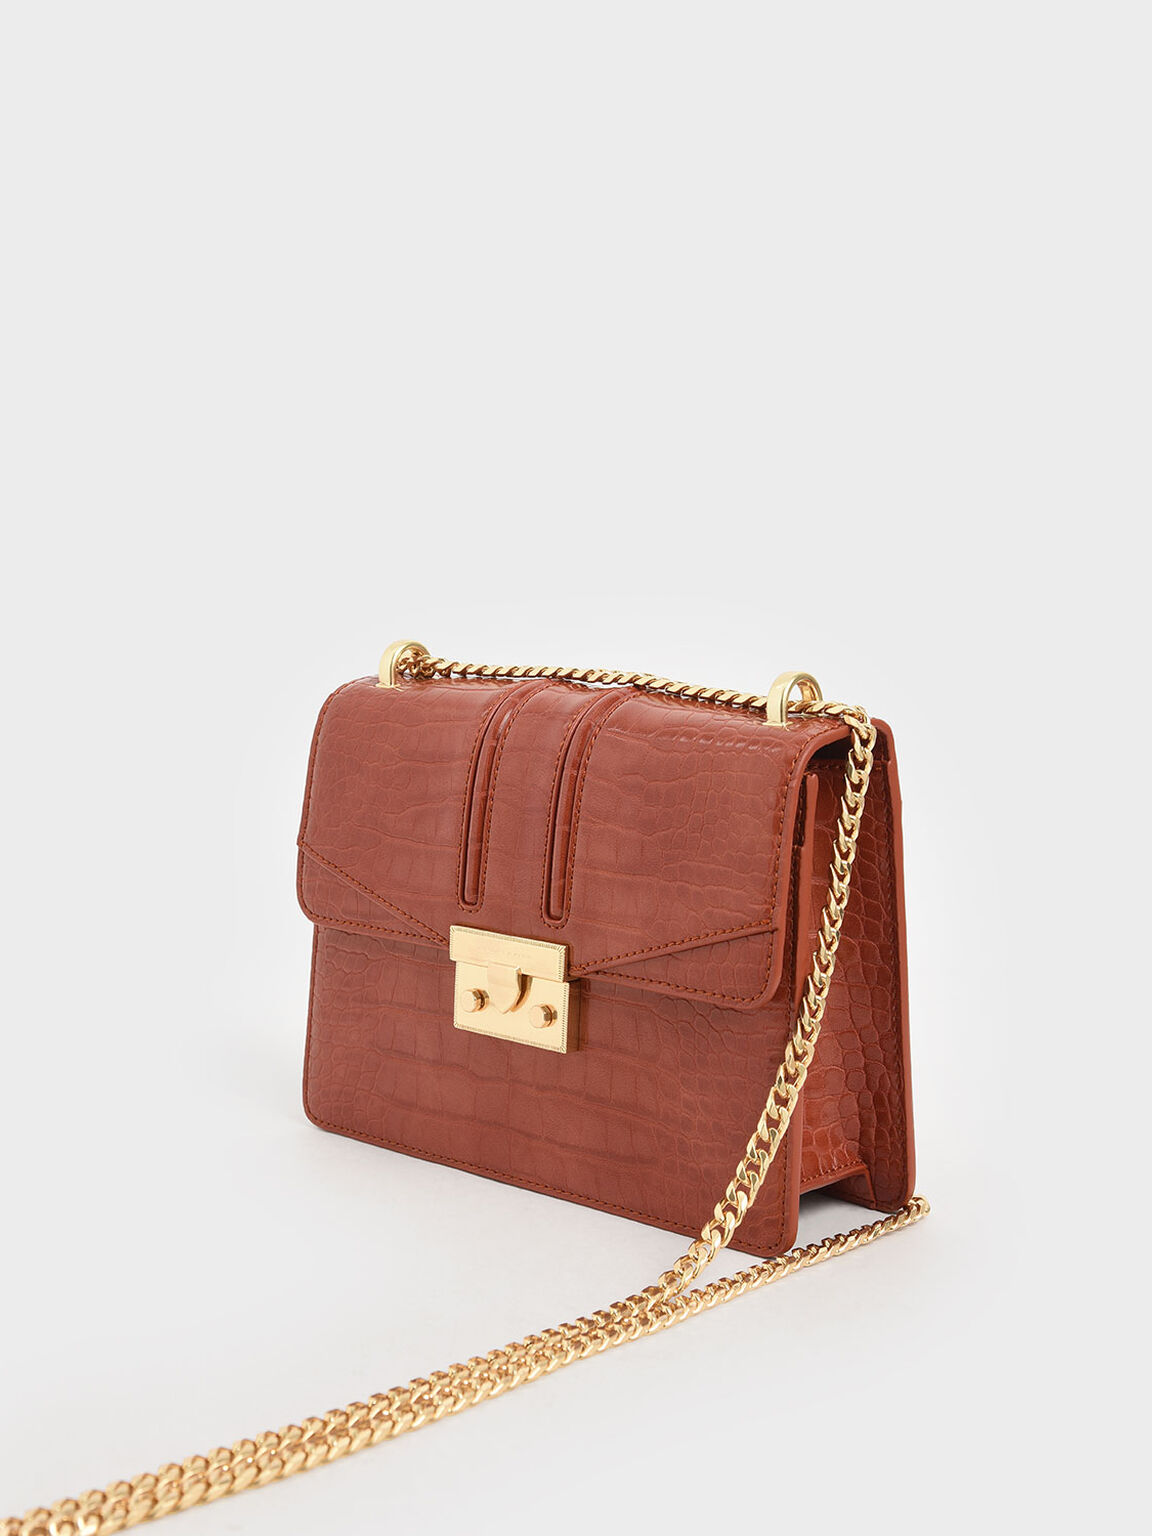 Croc-Effect Chain Strap Shoulder Bag, Clay, hi-res